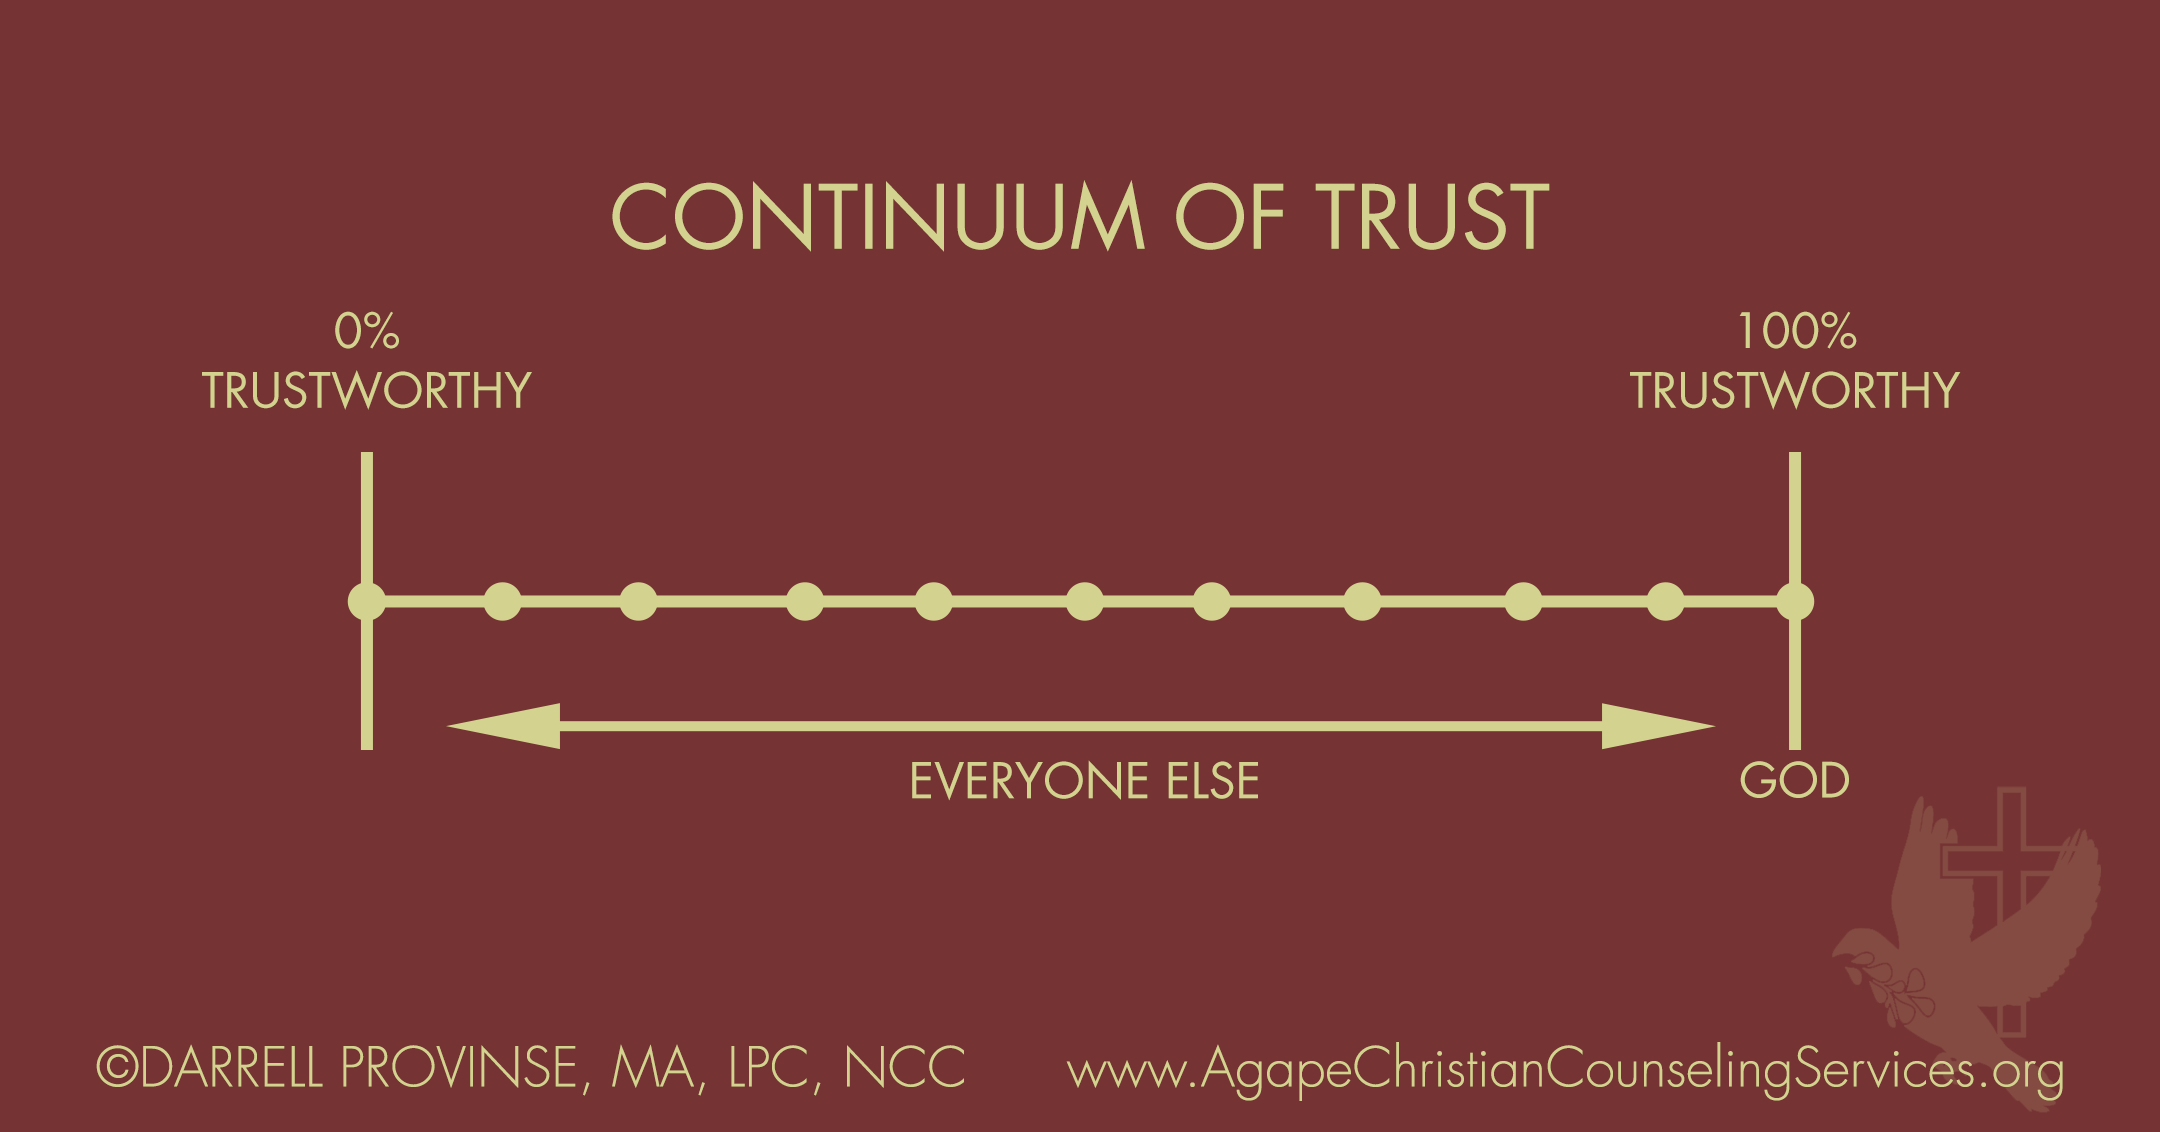 Continuum of Trust - it's important to realize that only God is 100% trustworthy. Everyone else falls on a continuum...